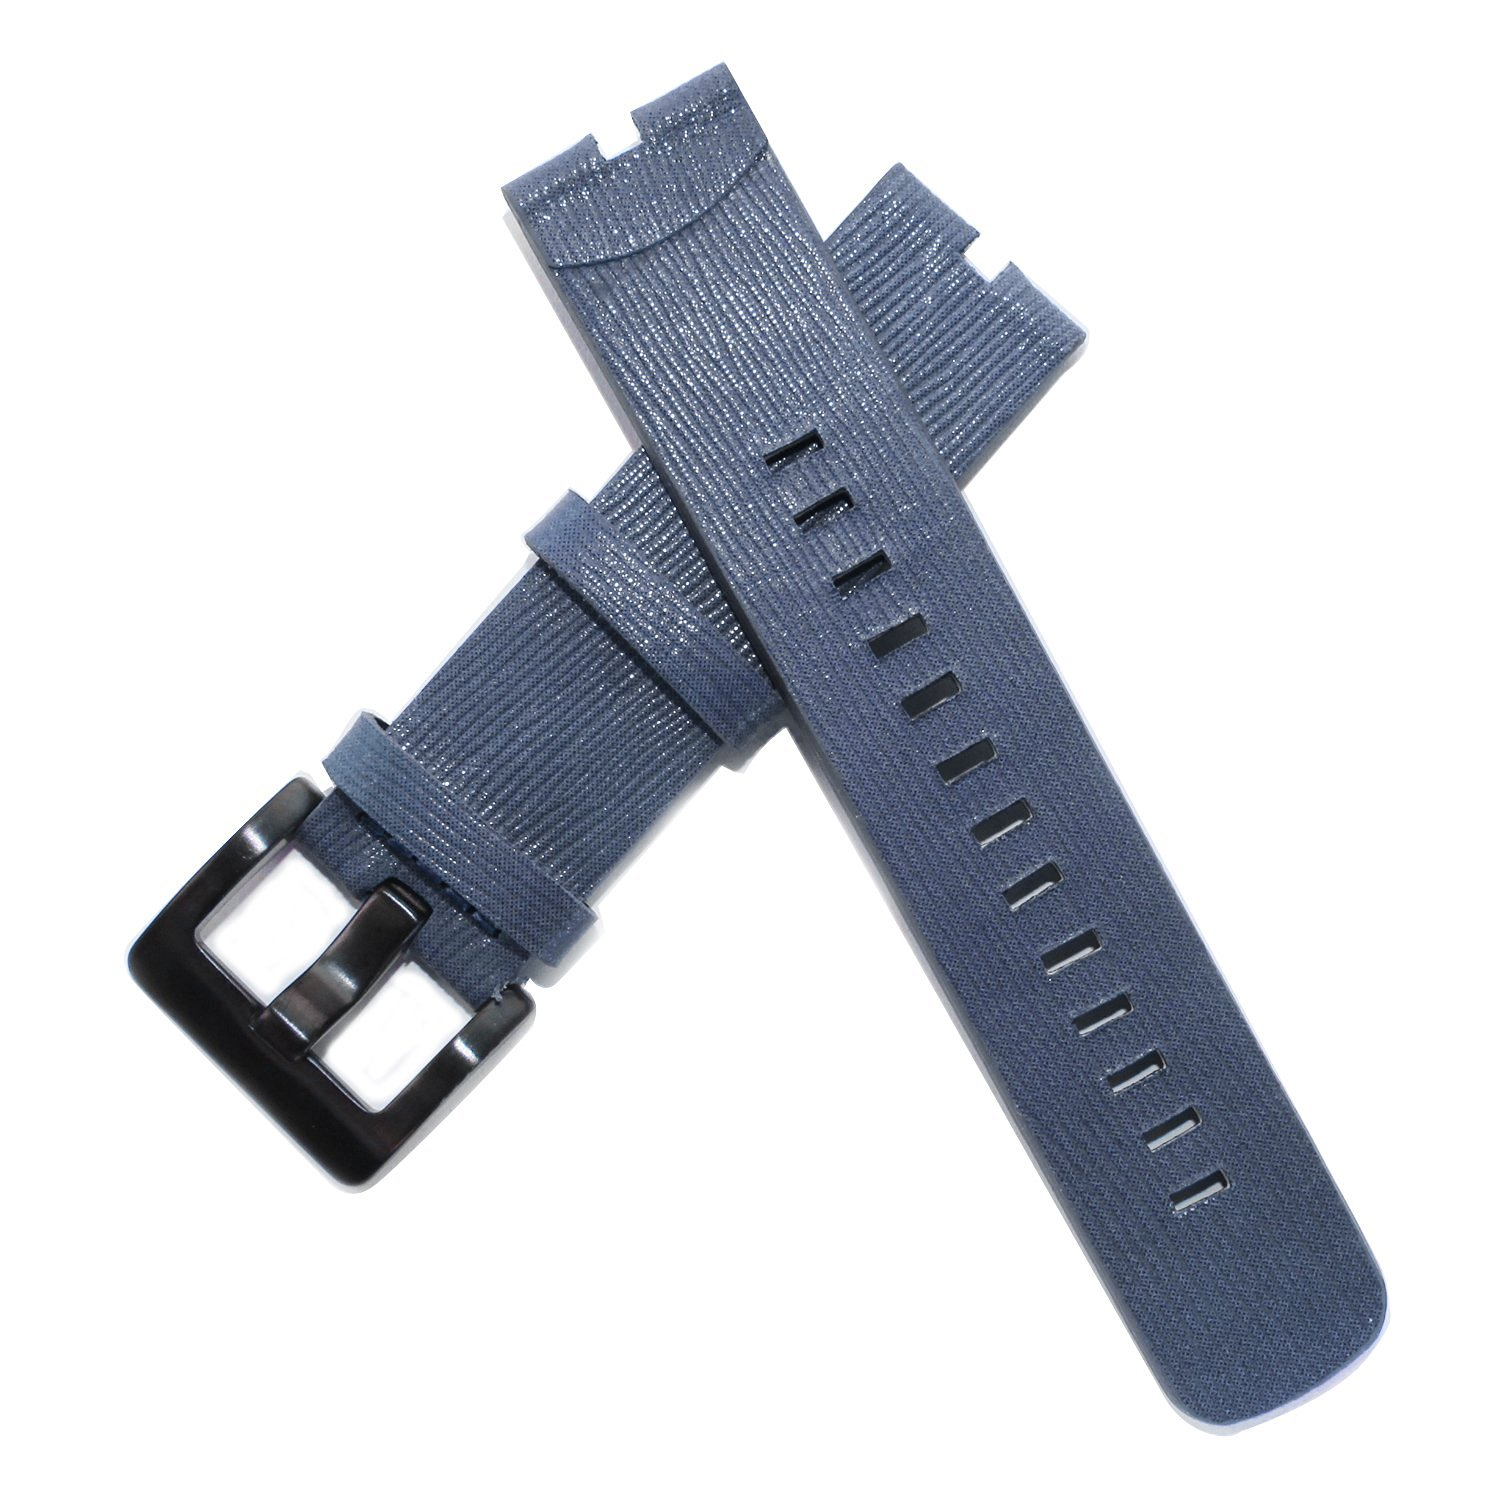 Fitian New Replacement Leather Watch Strap Band for Moto 360 Smart Watch Motorola Wristband with Free Screen Protector (Dark Blue Leather Strap)